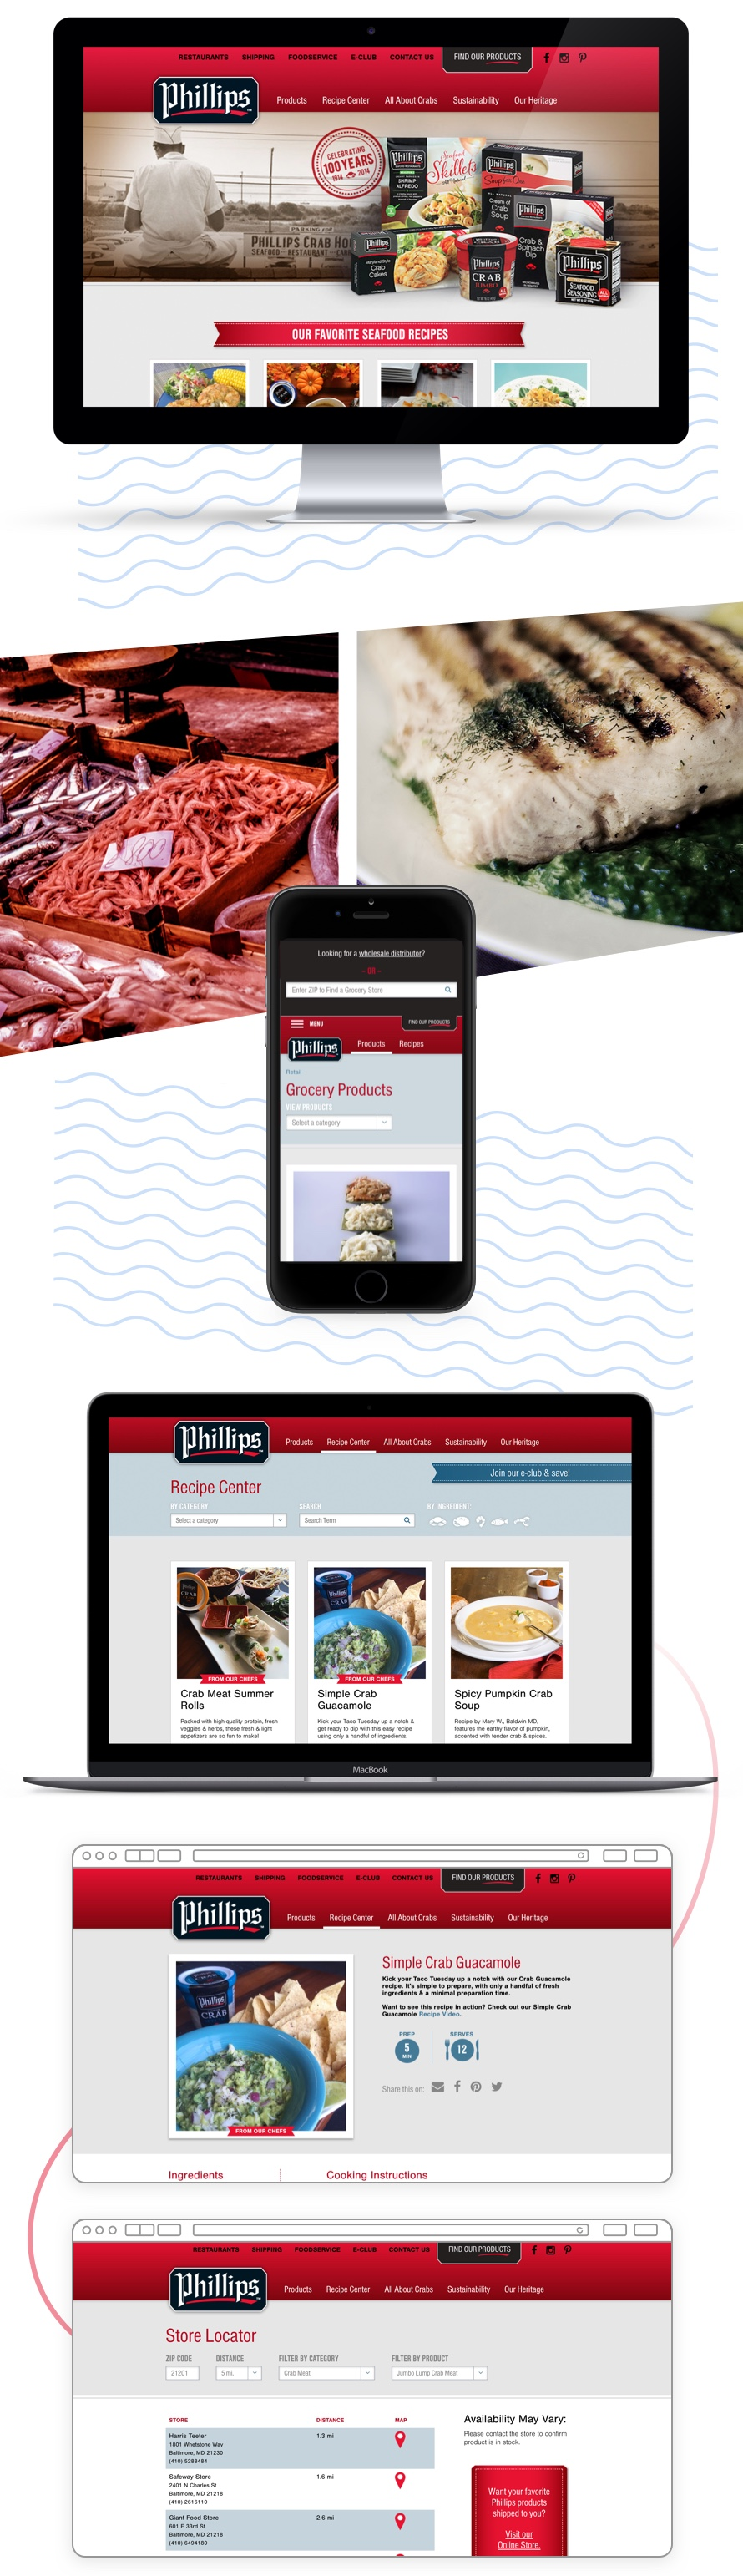 Phillips website on a desktop and mobile phone.